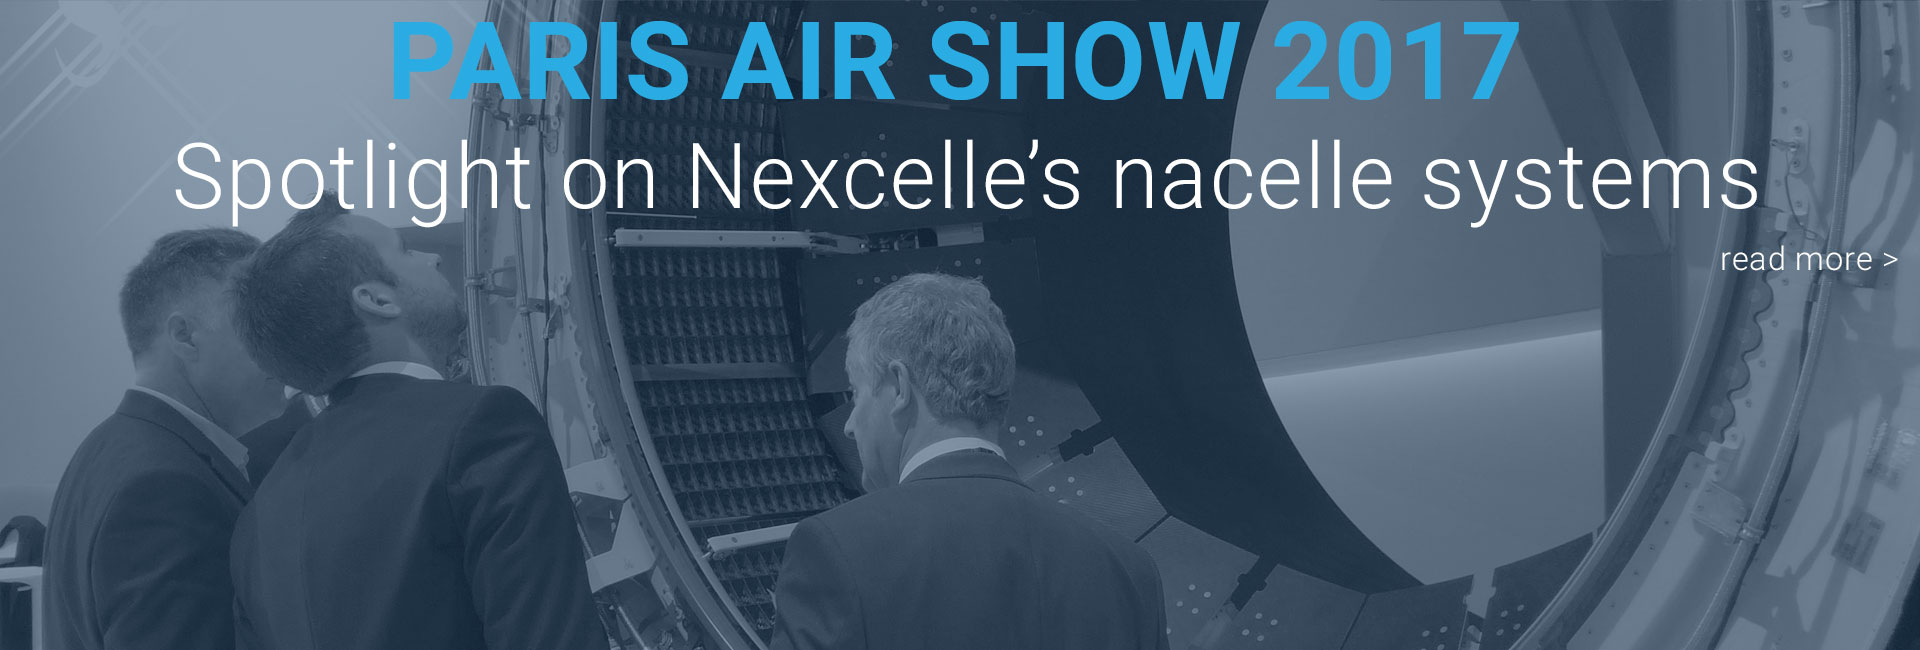 Nexcelle's nacelle systems take center stage at the Paris Air Show